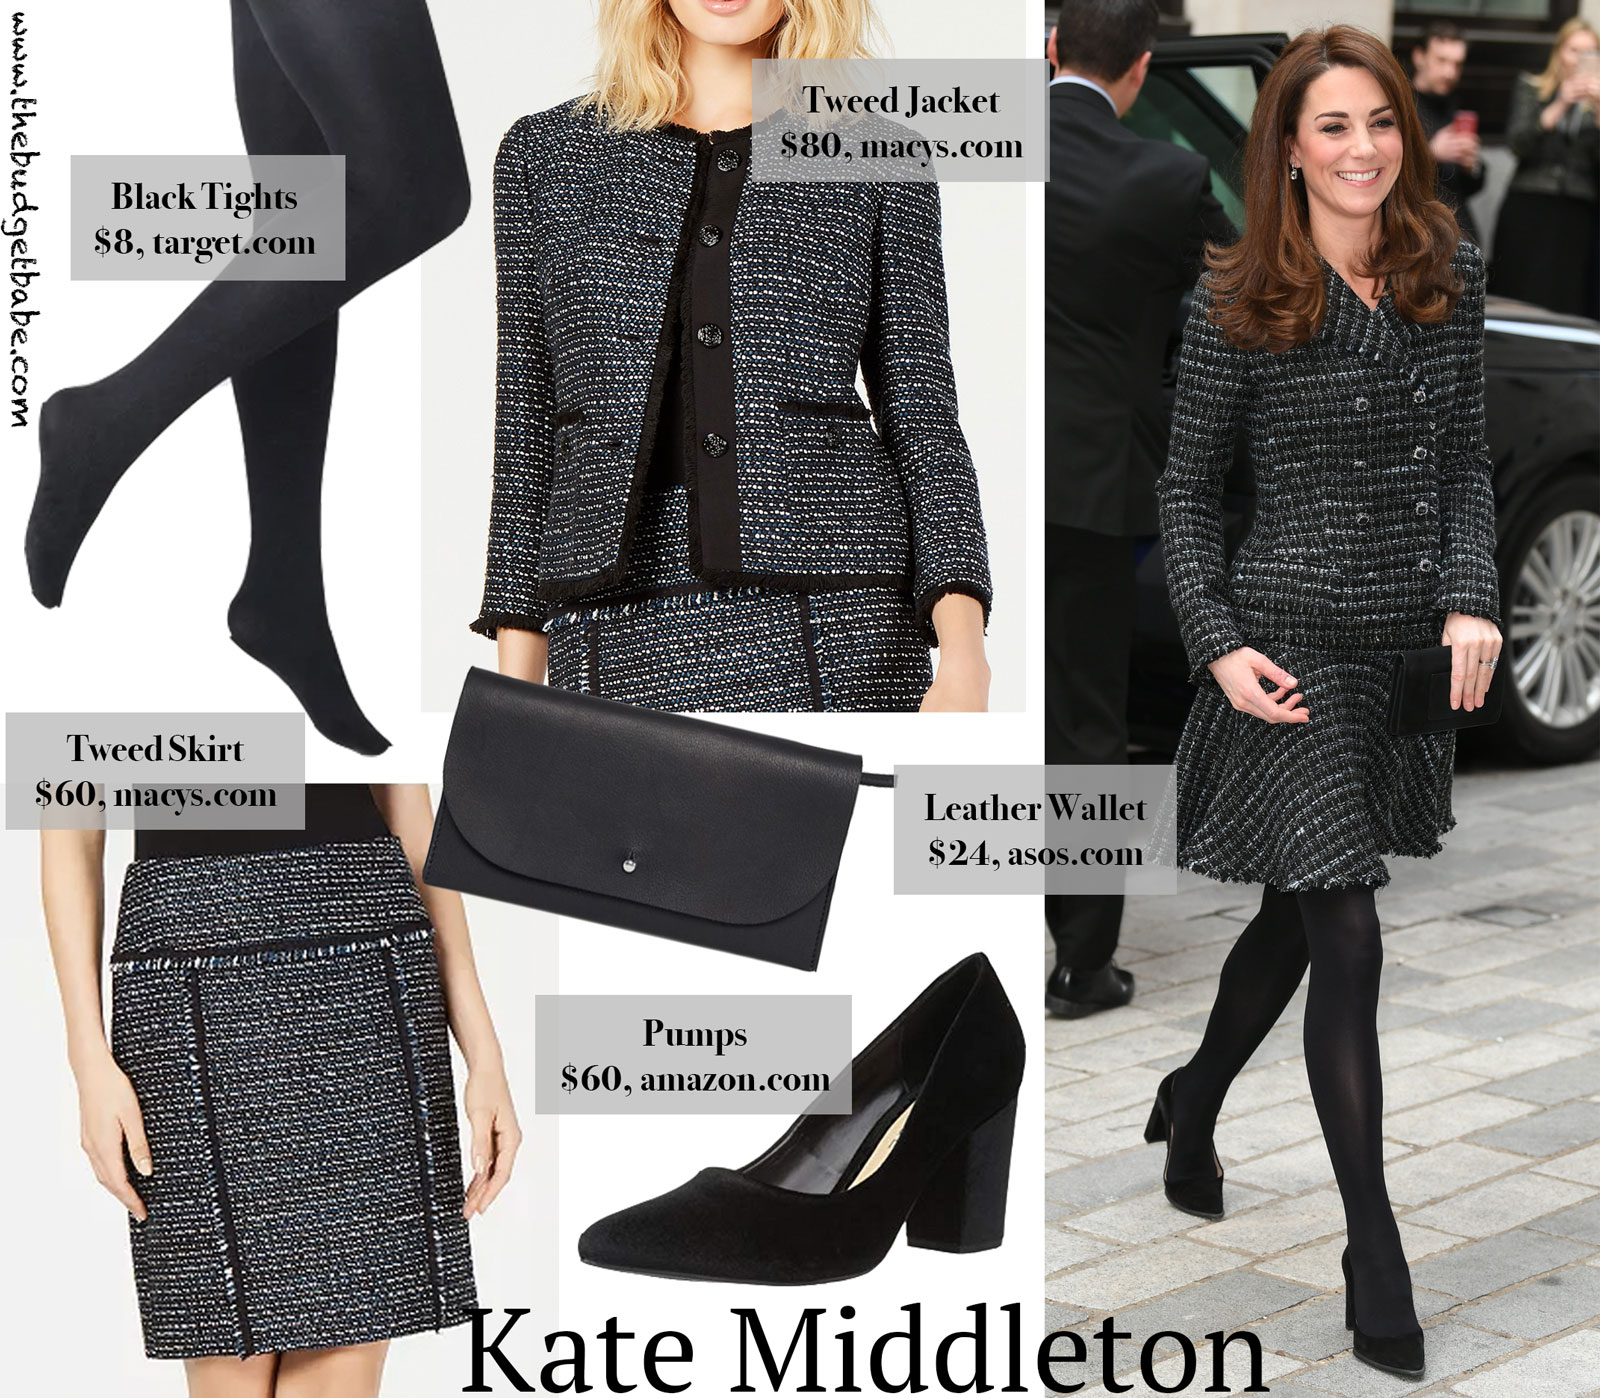 Katie Middleton Tweed Blazer and Skirt Look for Less